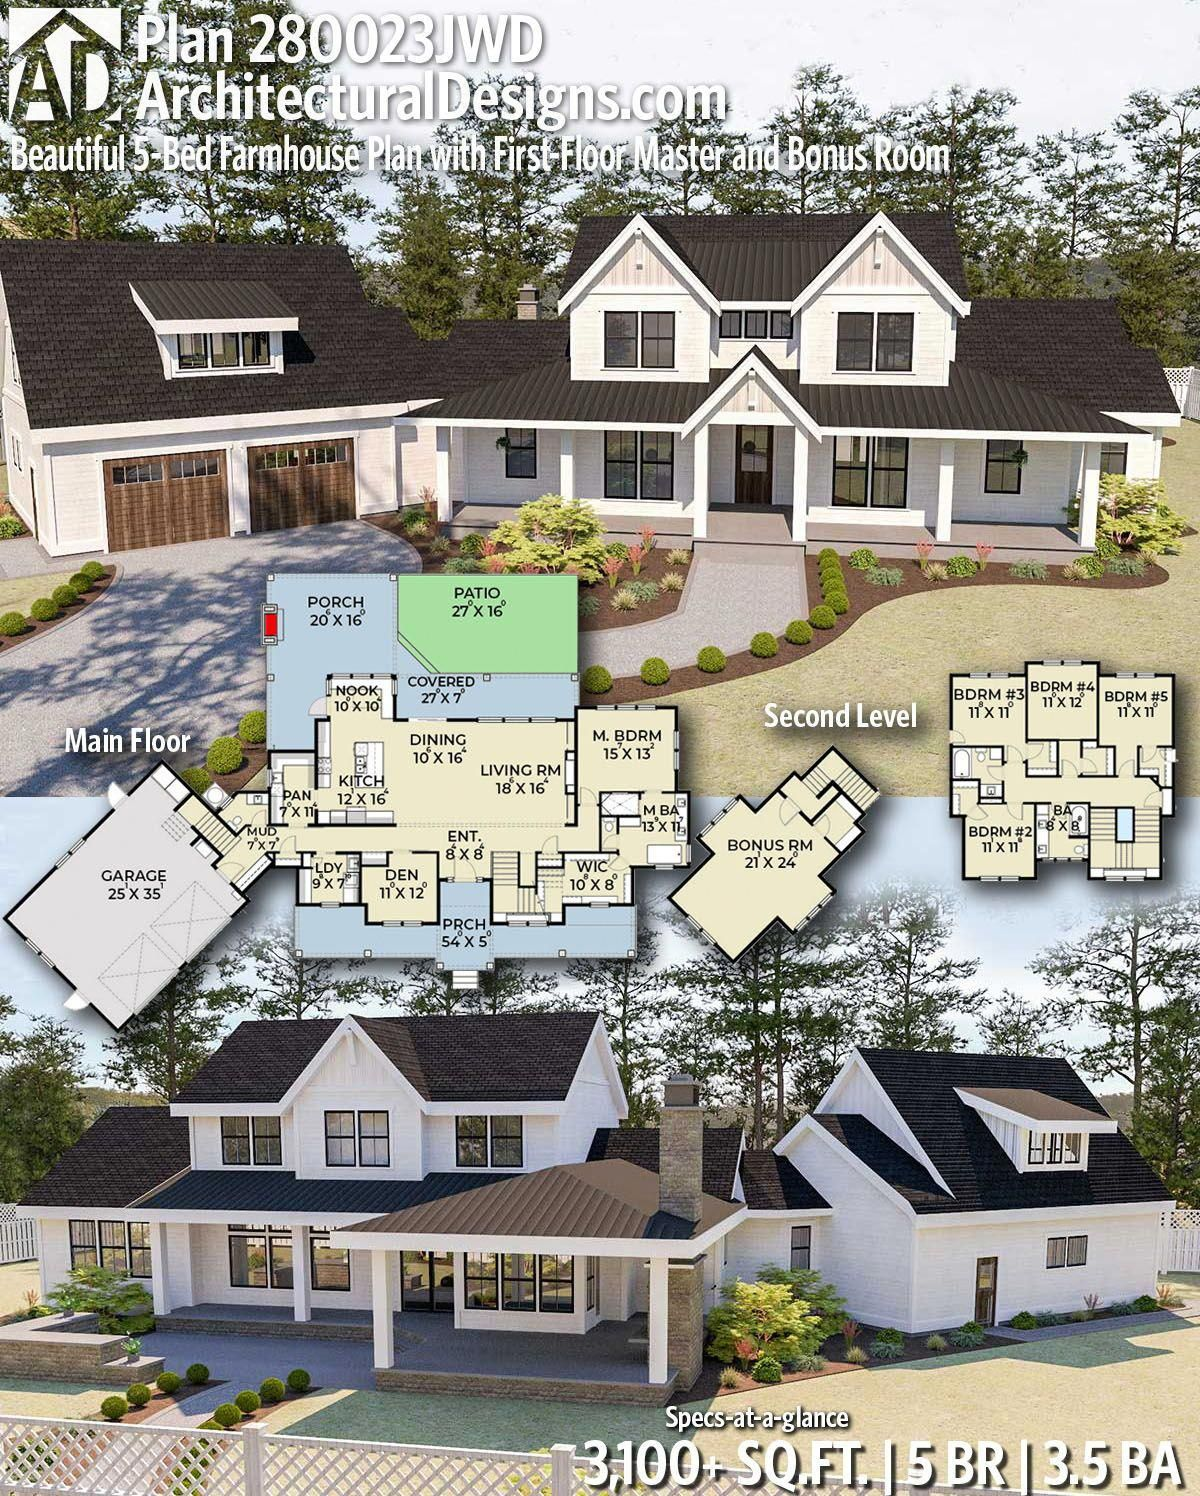 Architectural designs modern farmhouse plan 280023jwd gives you 5 bedrooms 3 5 baths and 3100